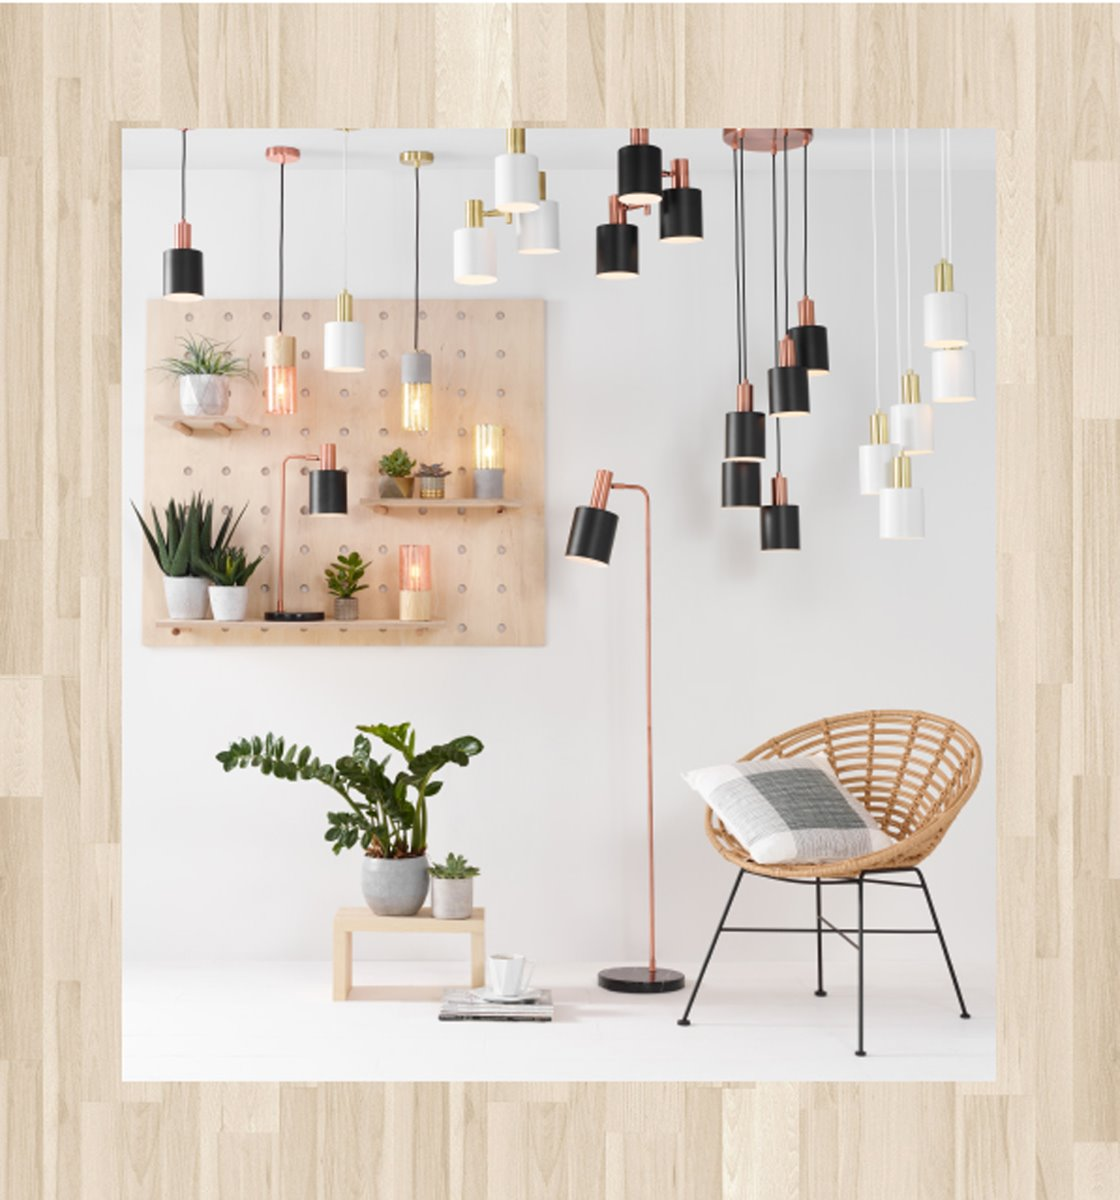 pendnat light lamp studio photography scandinavian